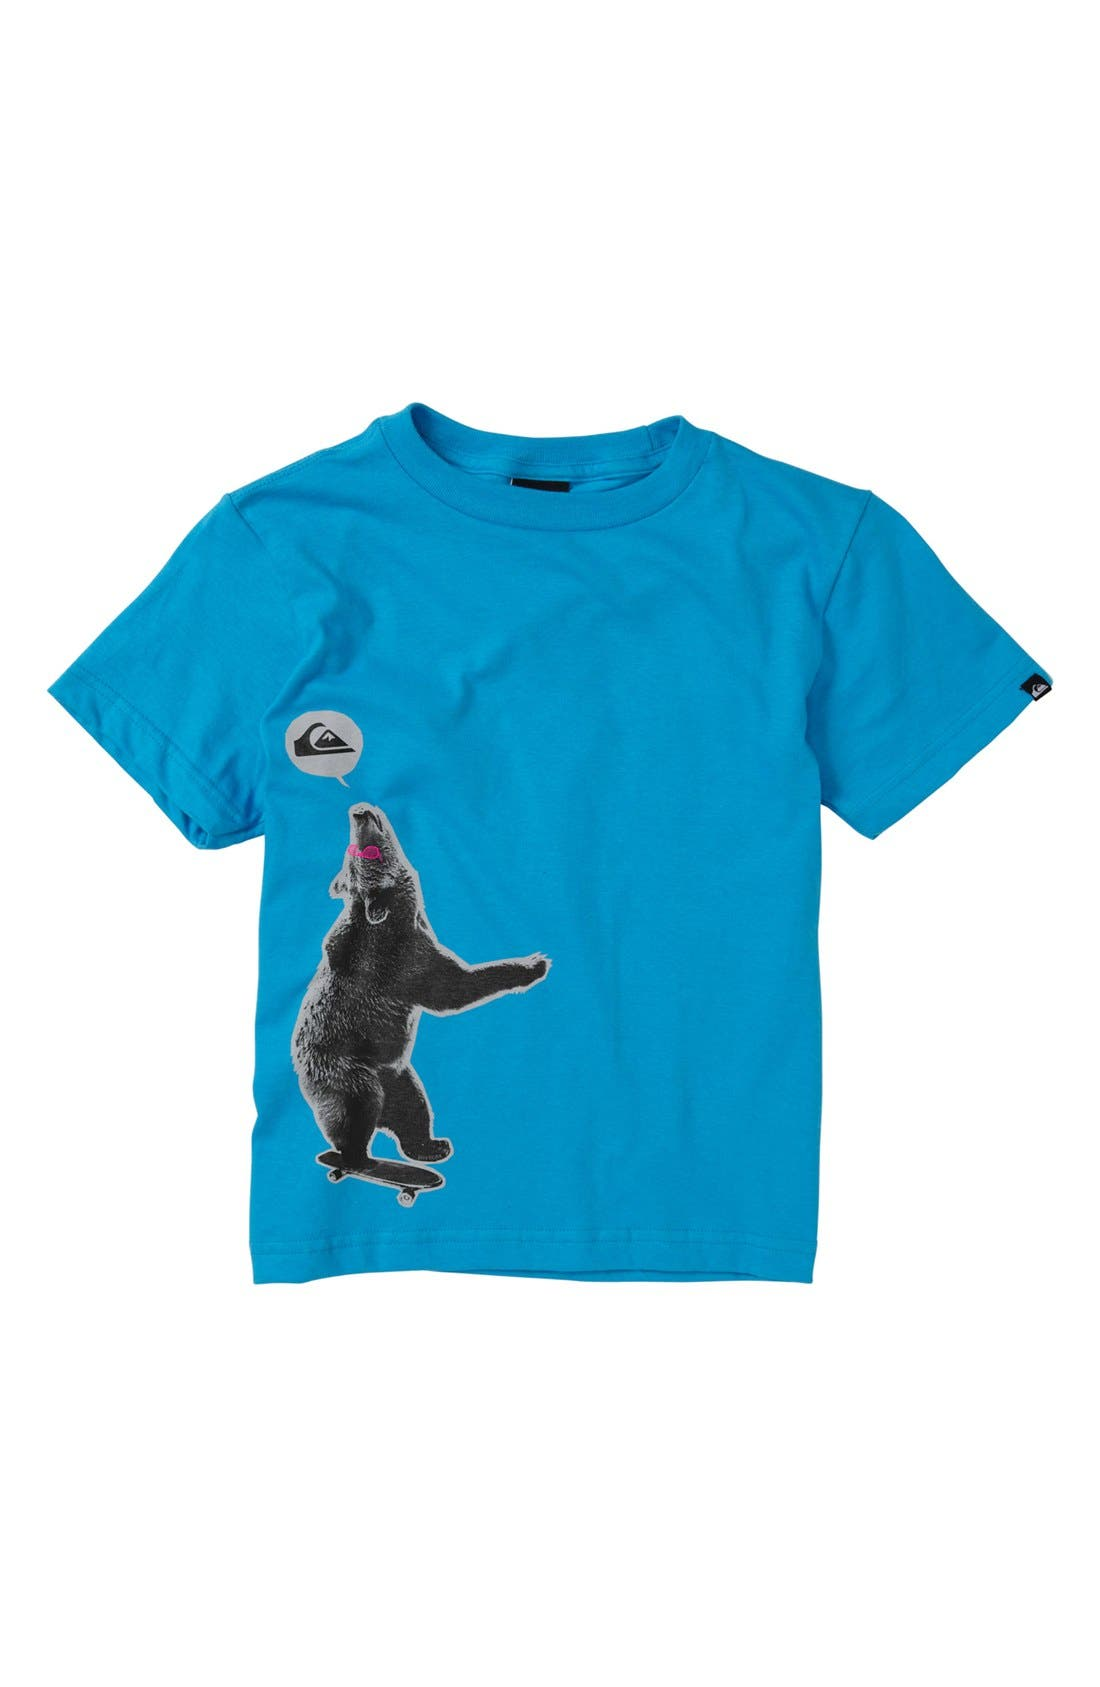 Alternate Image 1 Selected - Quiksilver 'Free Ride' T-Shirt (Baby Boys)